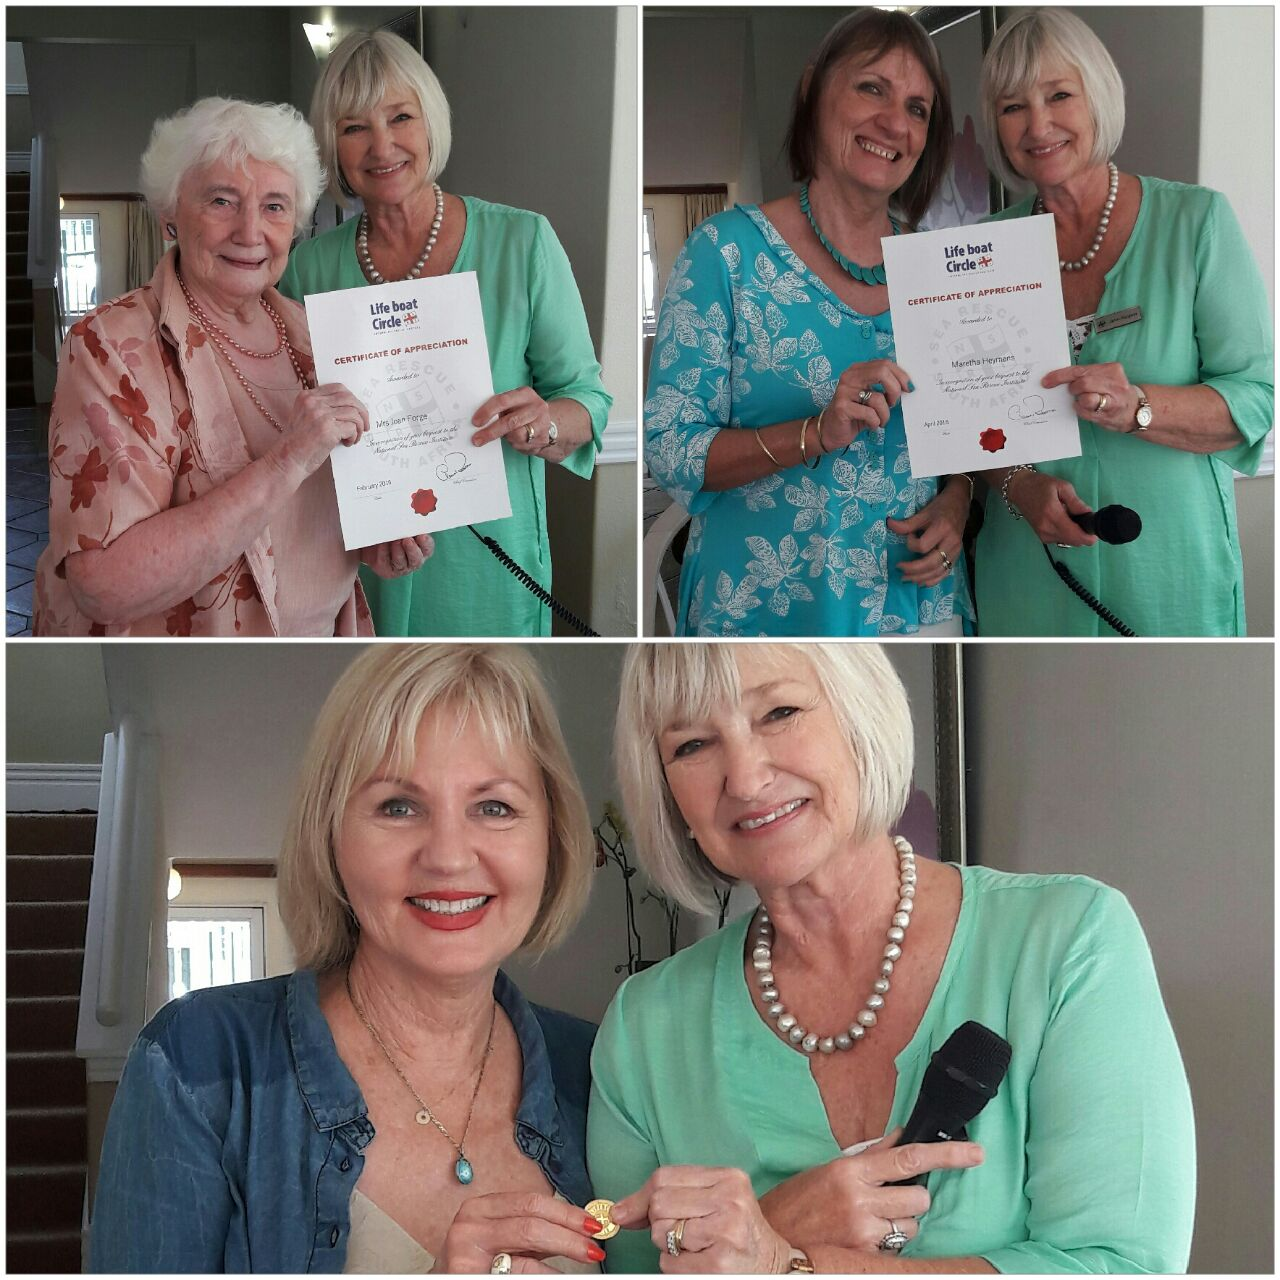 Joan Forge, Martha Heymans and Lynne Neilson